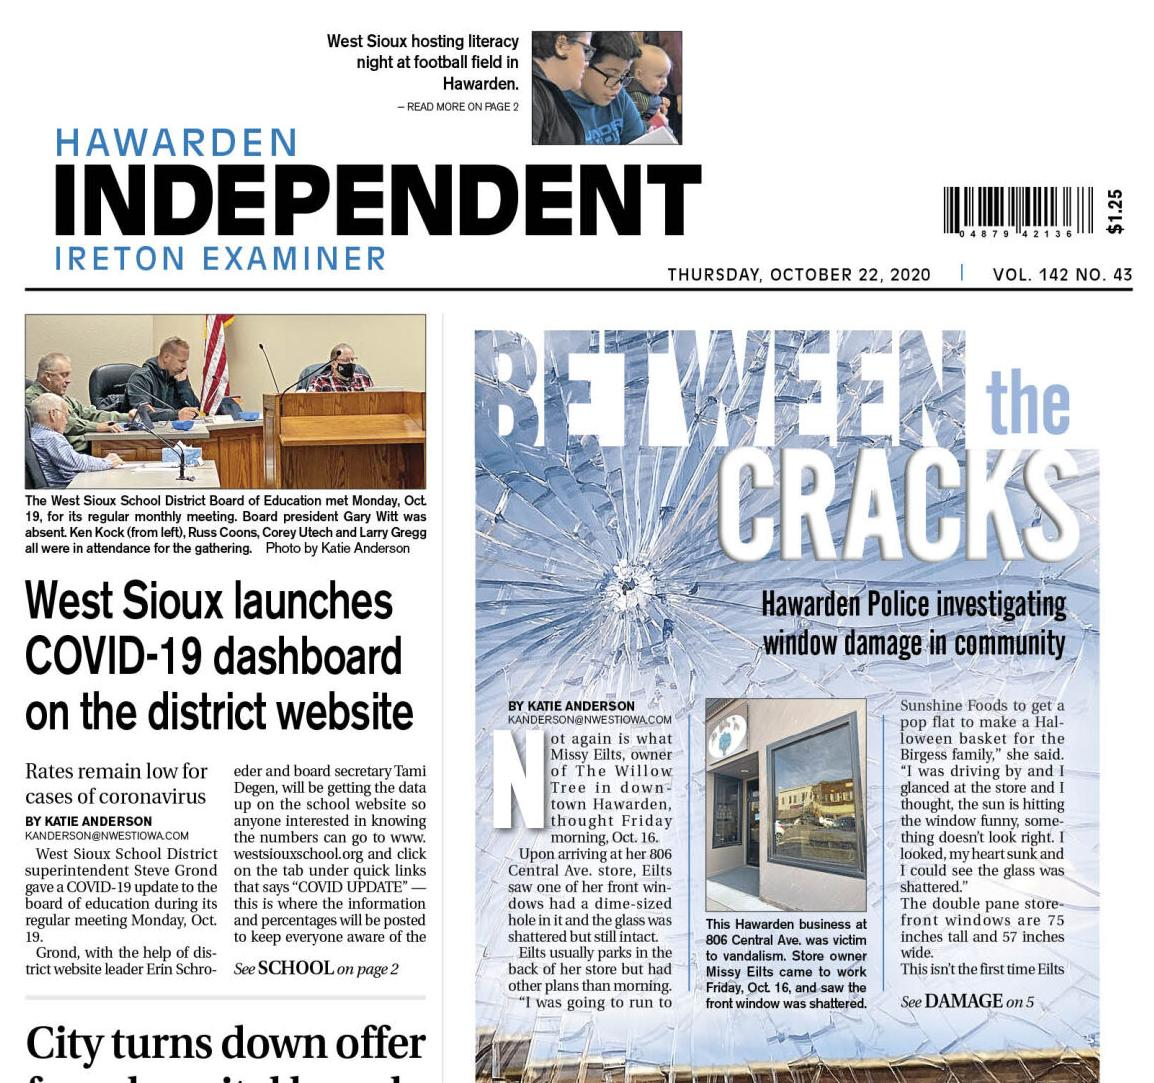 Hawarden Independent/Ireton Examiner Oct. 22, 2020